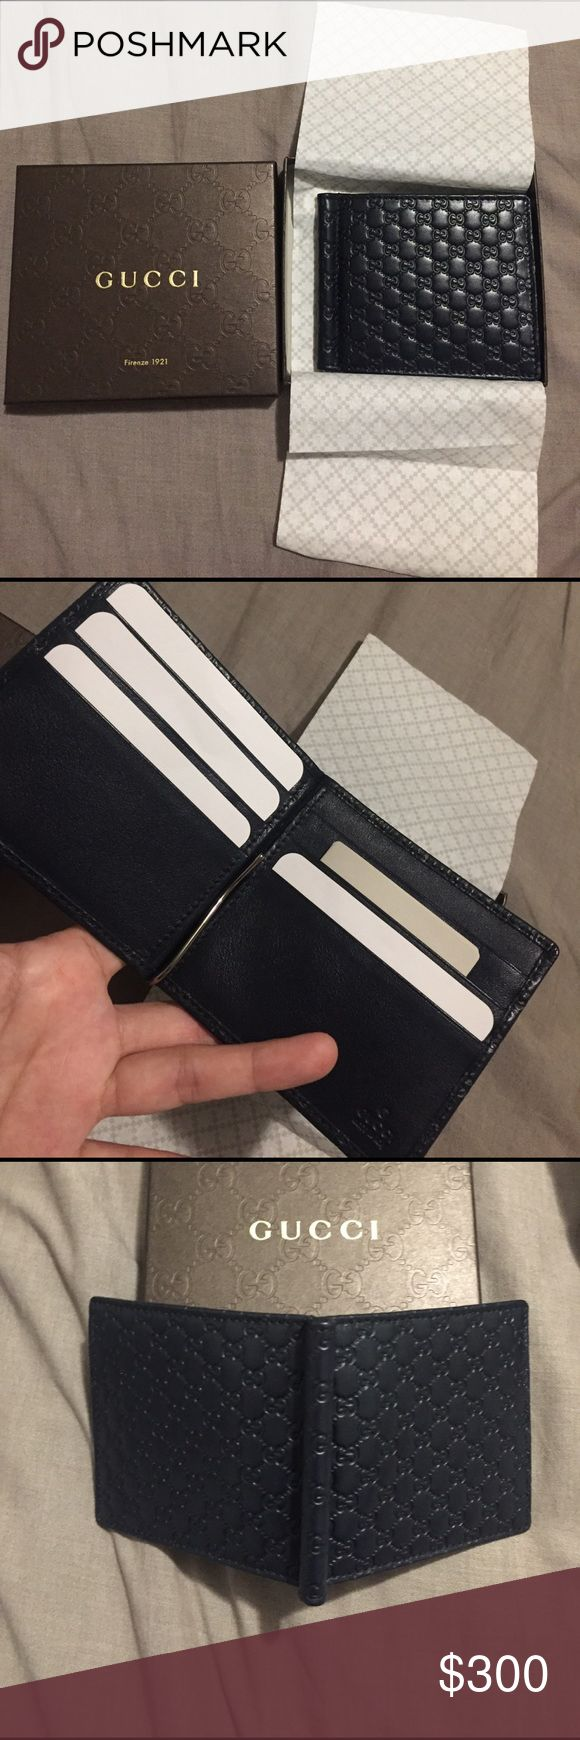 NWT GUCCI Men money clip wallet navy Brand new with box Gucci classic money clip wallet, micro guccissima leather, navy color, both wallet & box made in ITALY. great birthday gift Gucci Accessories Money Clips